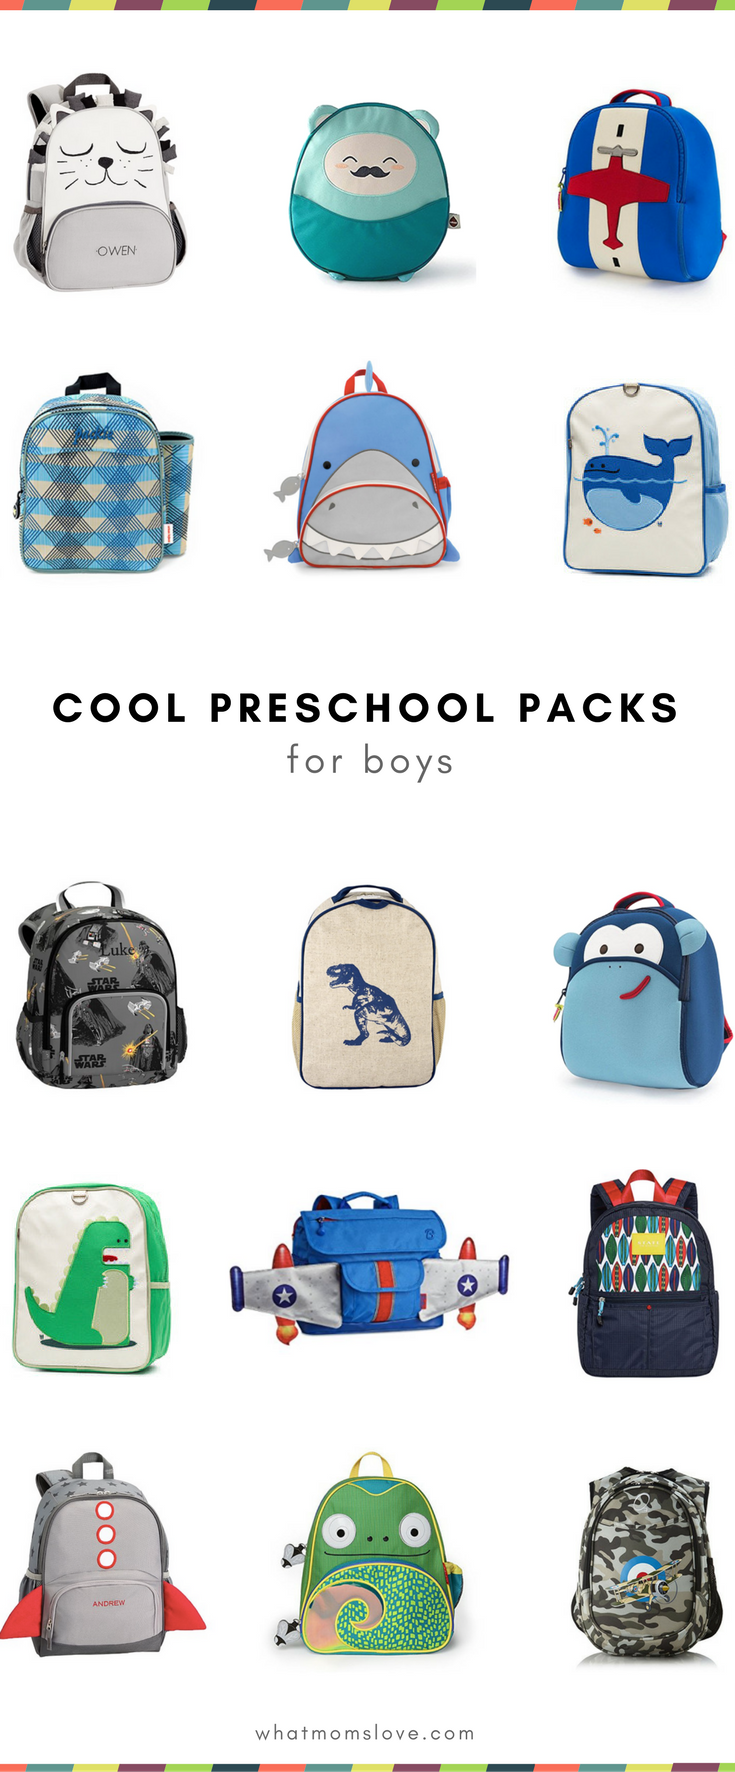 Best small backpacks for preschool and toddler boys   Preschool gear for  little kids - all the products you need getting ready for the first day of  school ... 4b69d36480